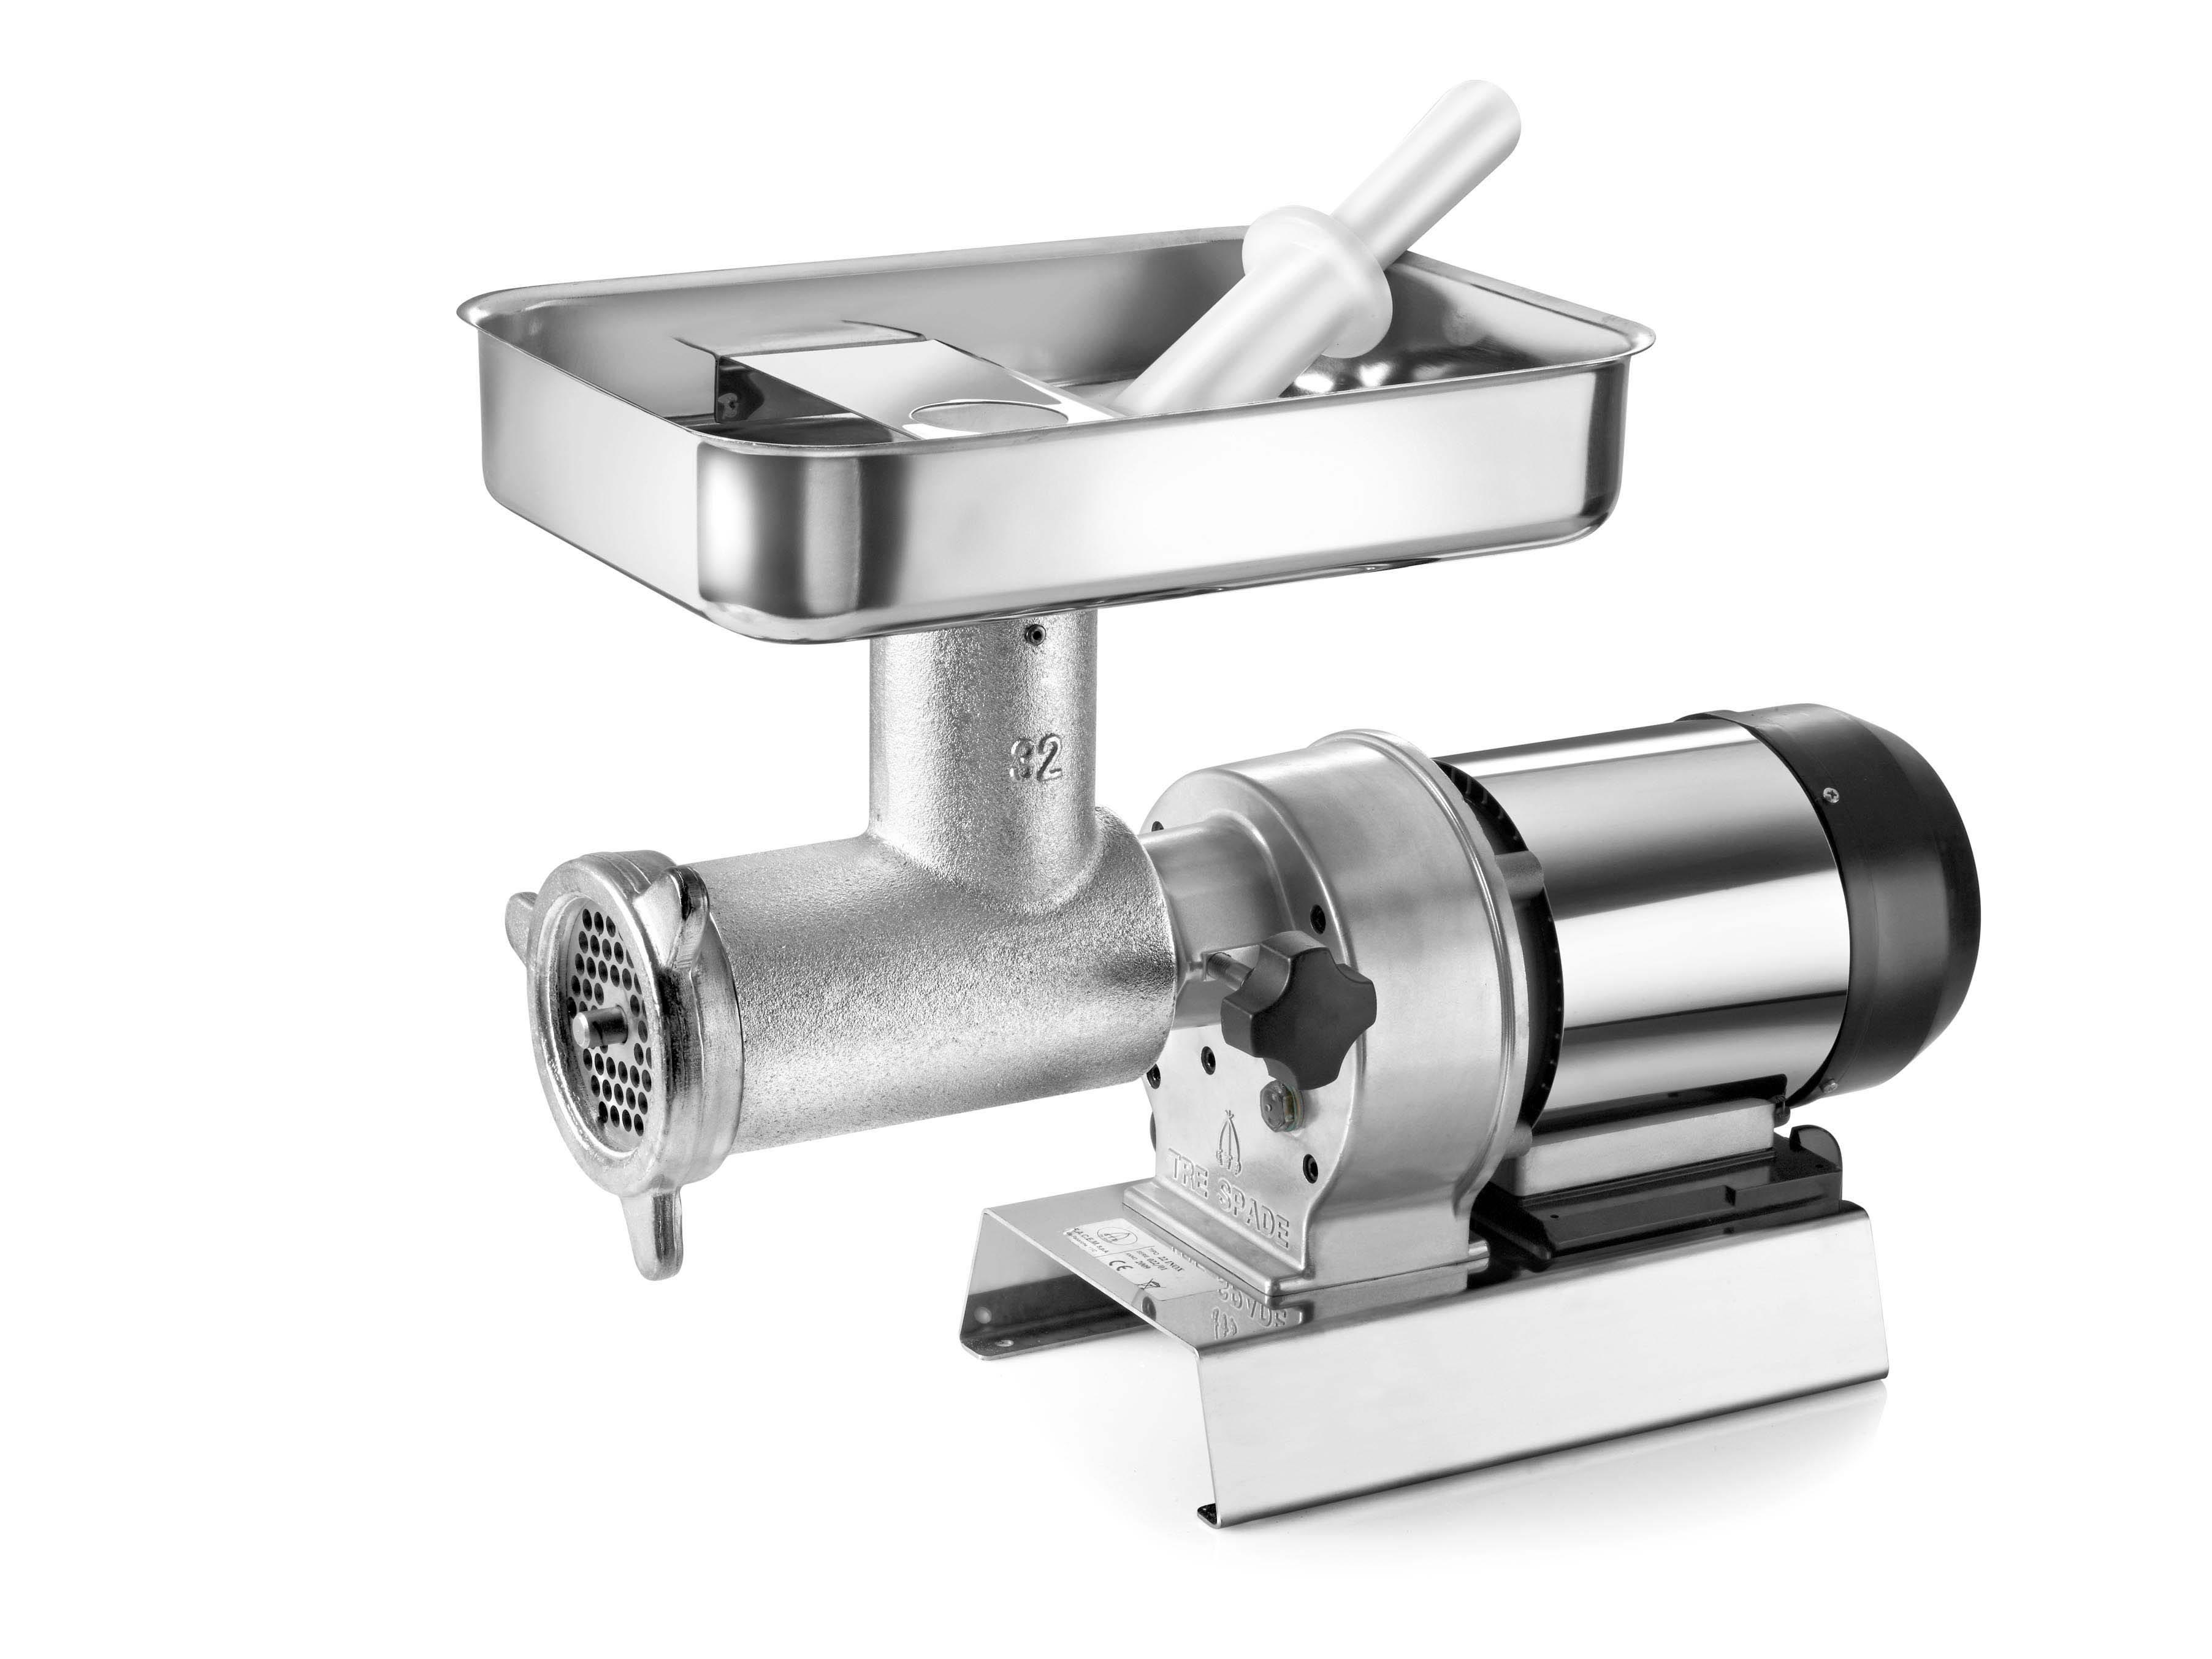 N0 32 Electric Mincer - Trespade